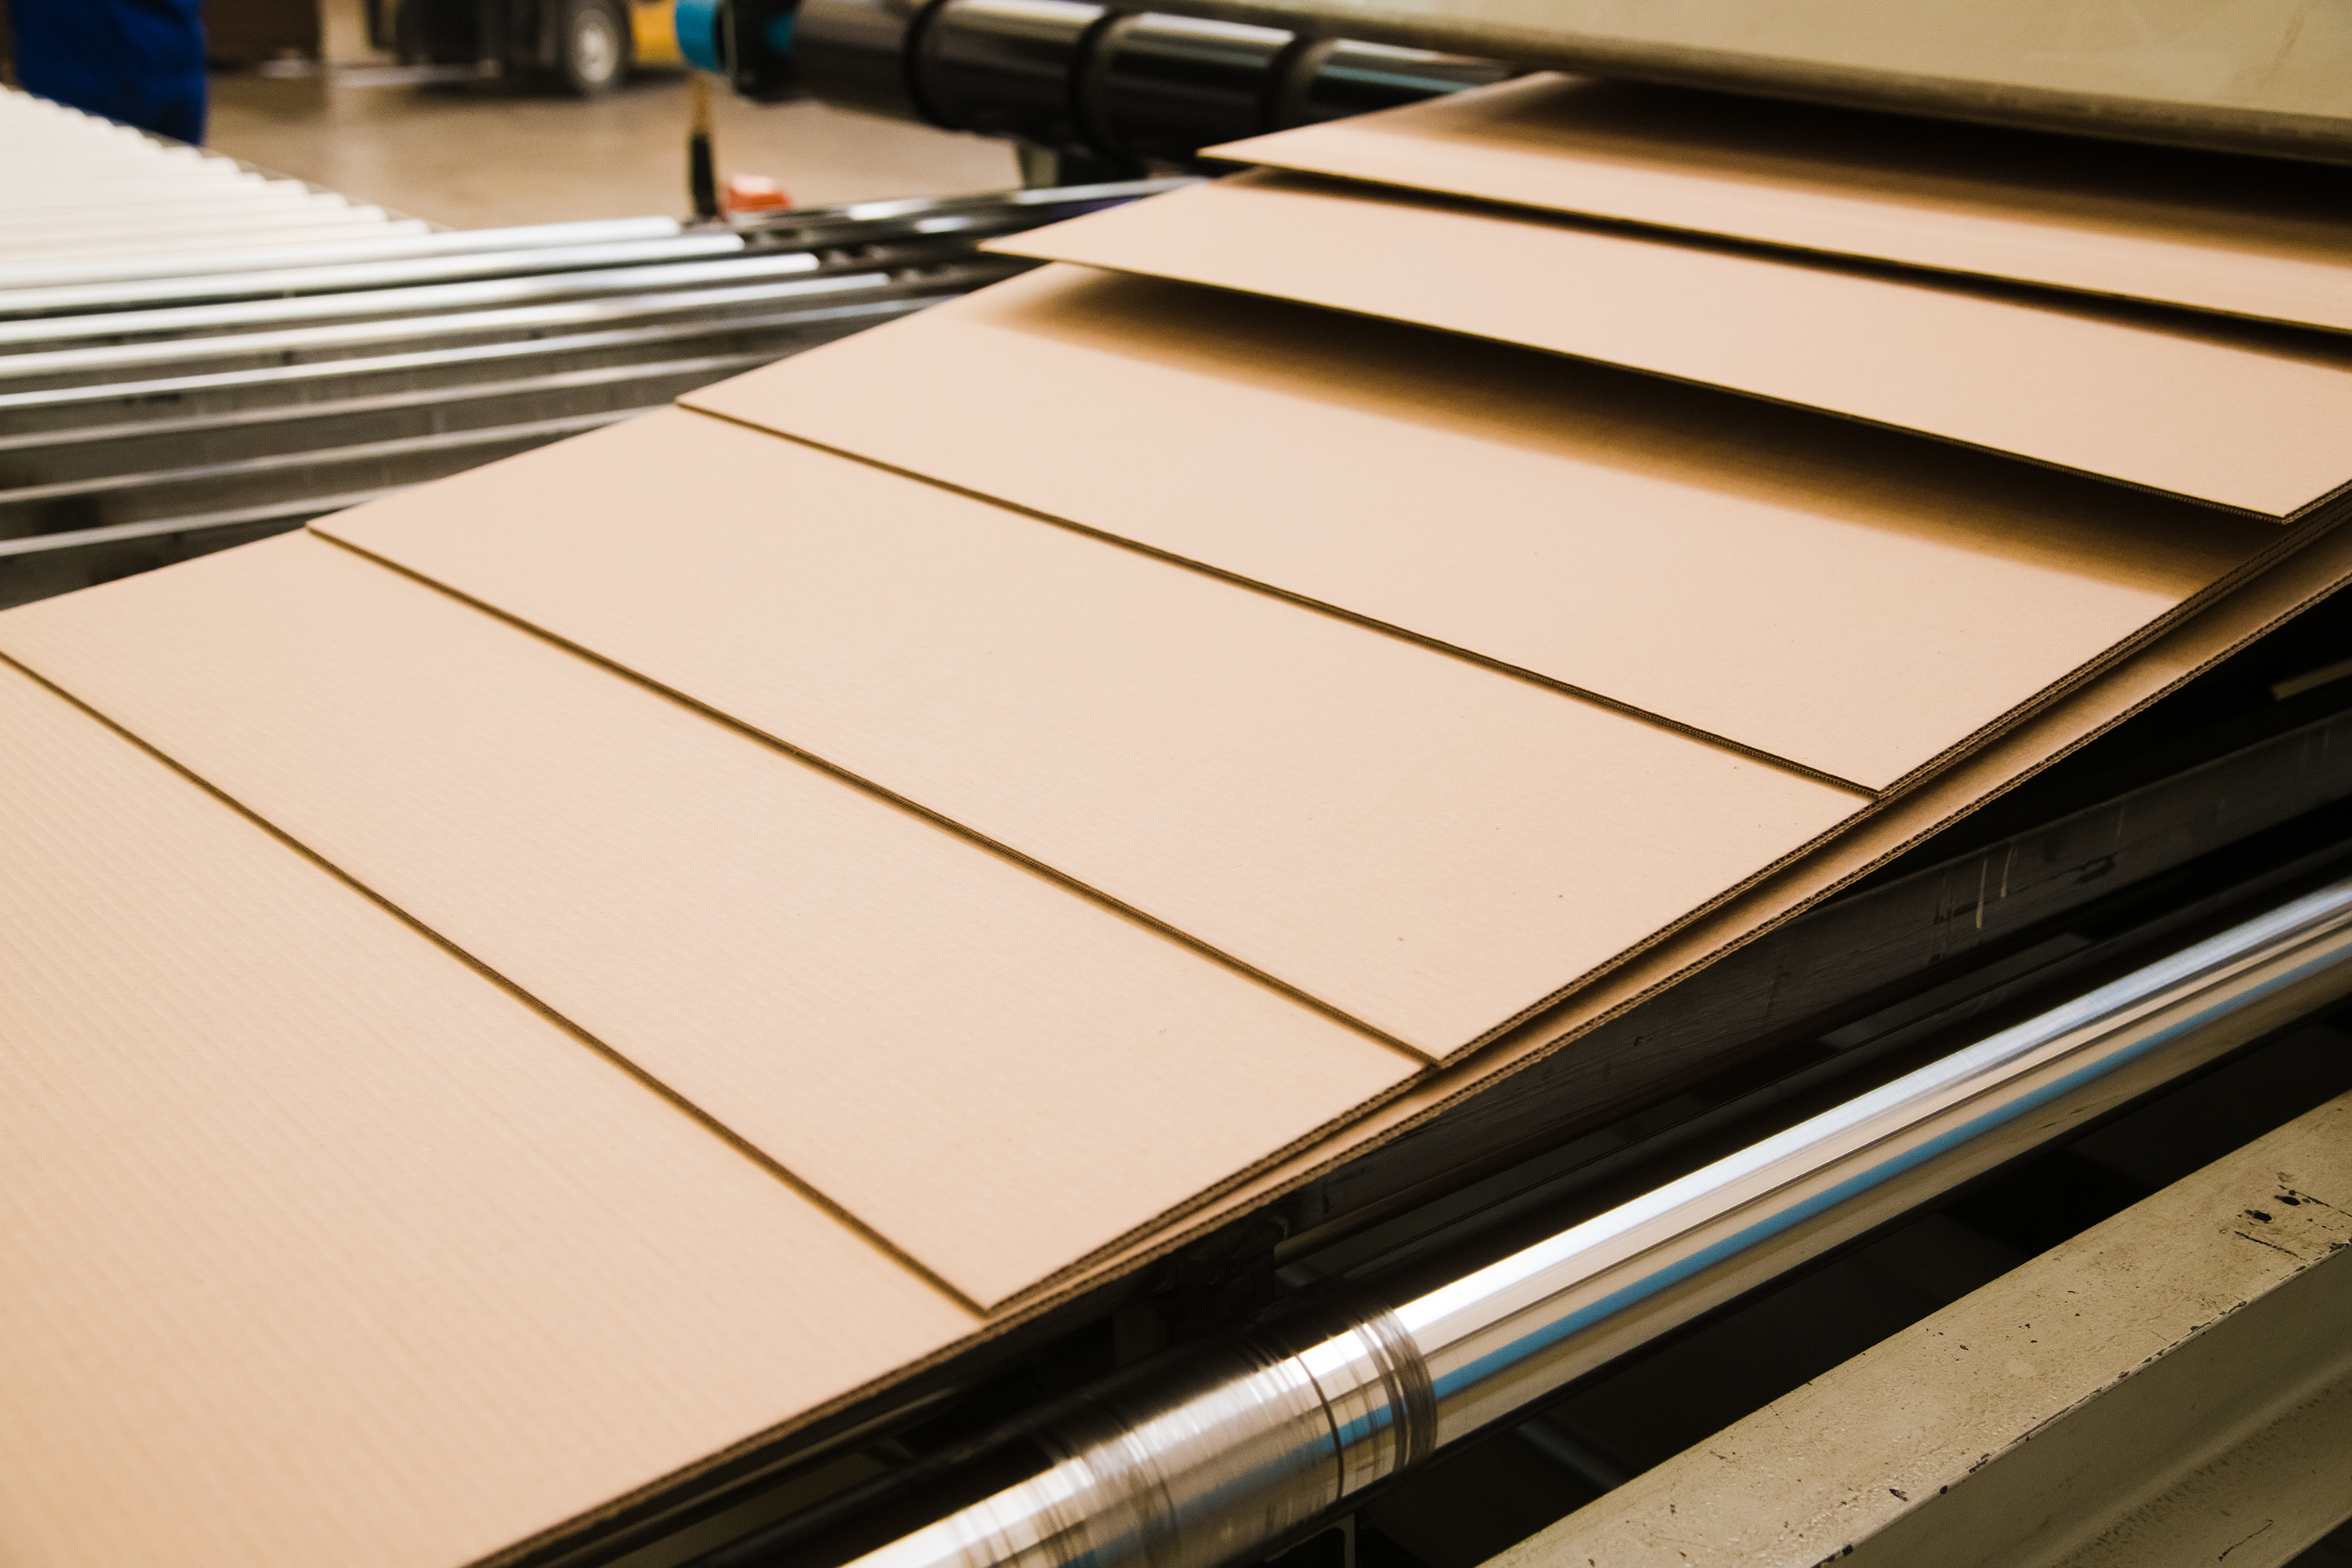 Sheets of corrugated cardboard on a conveyor